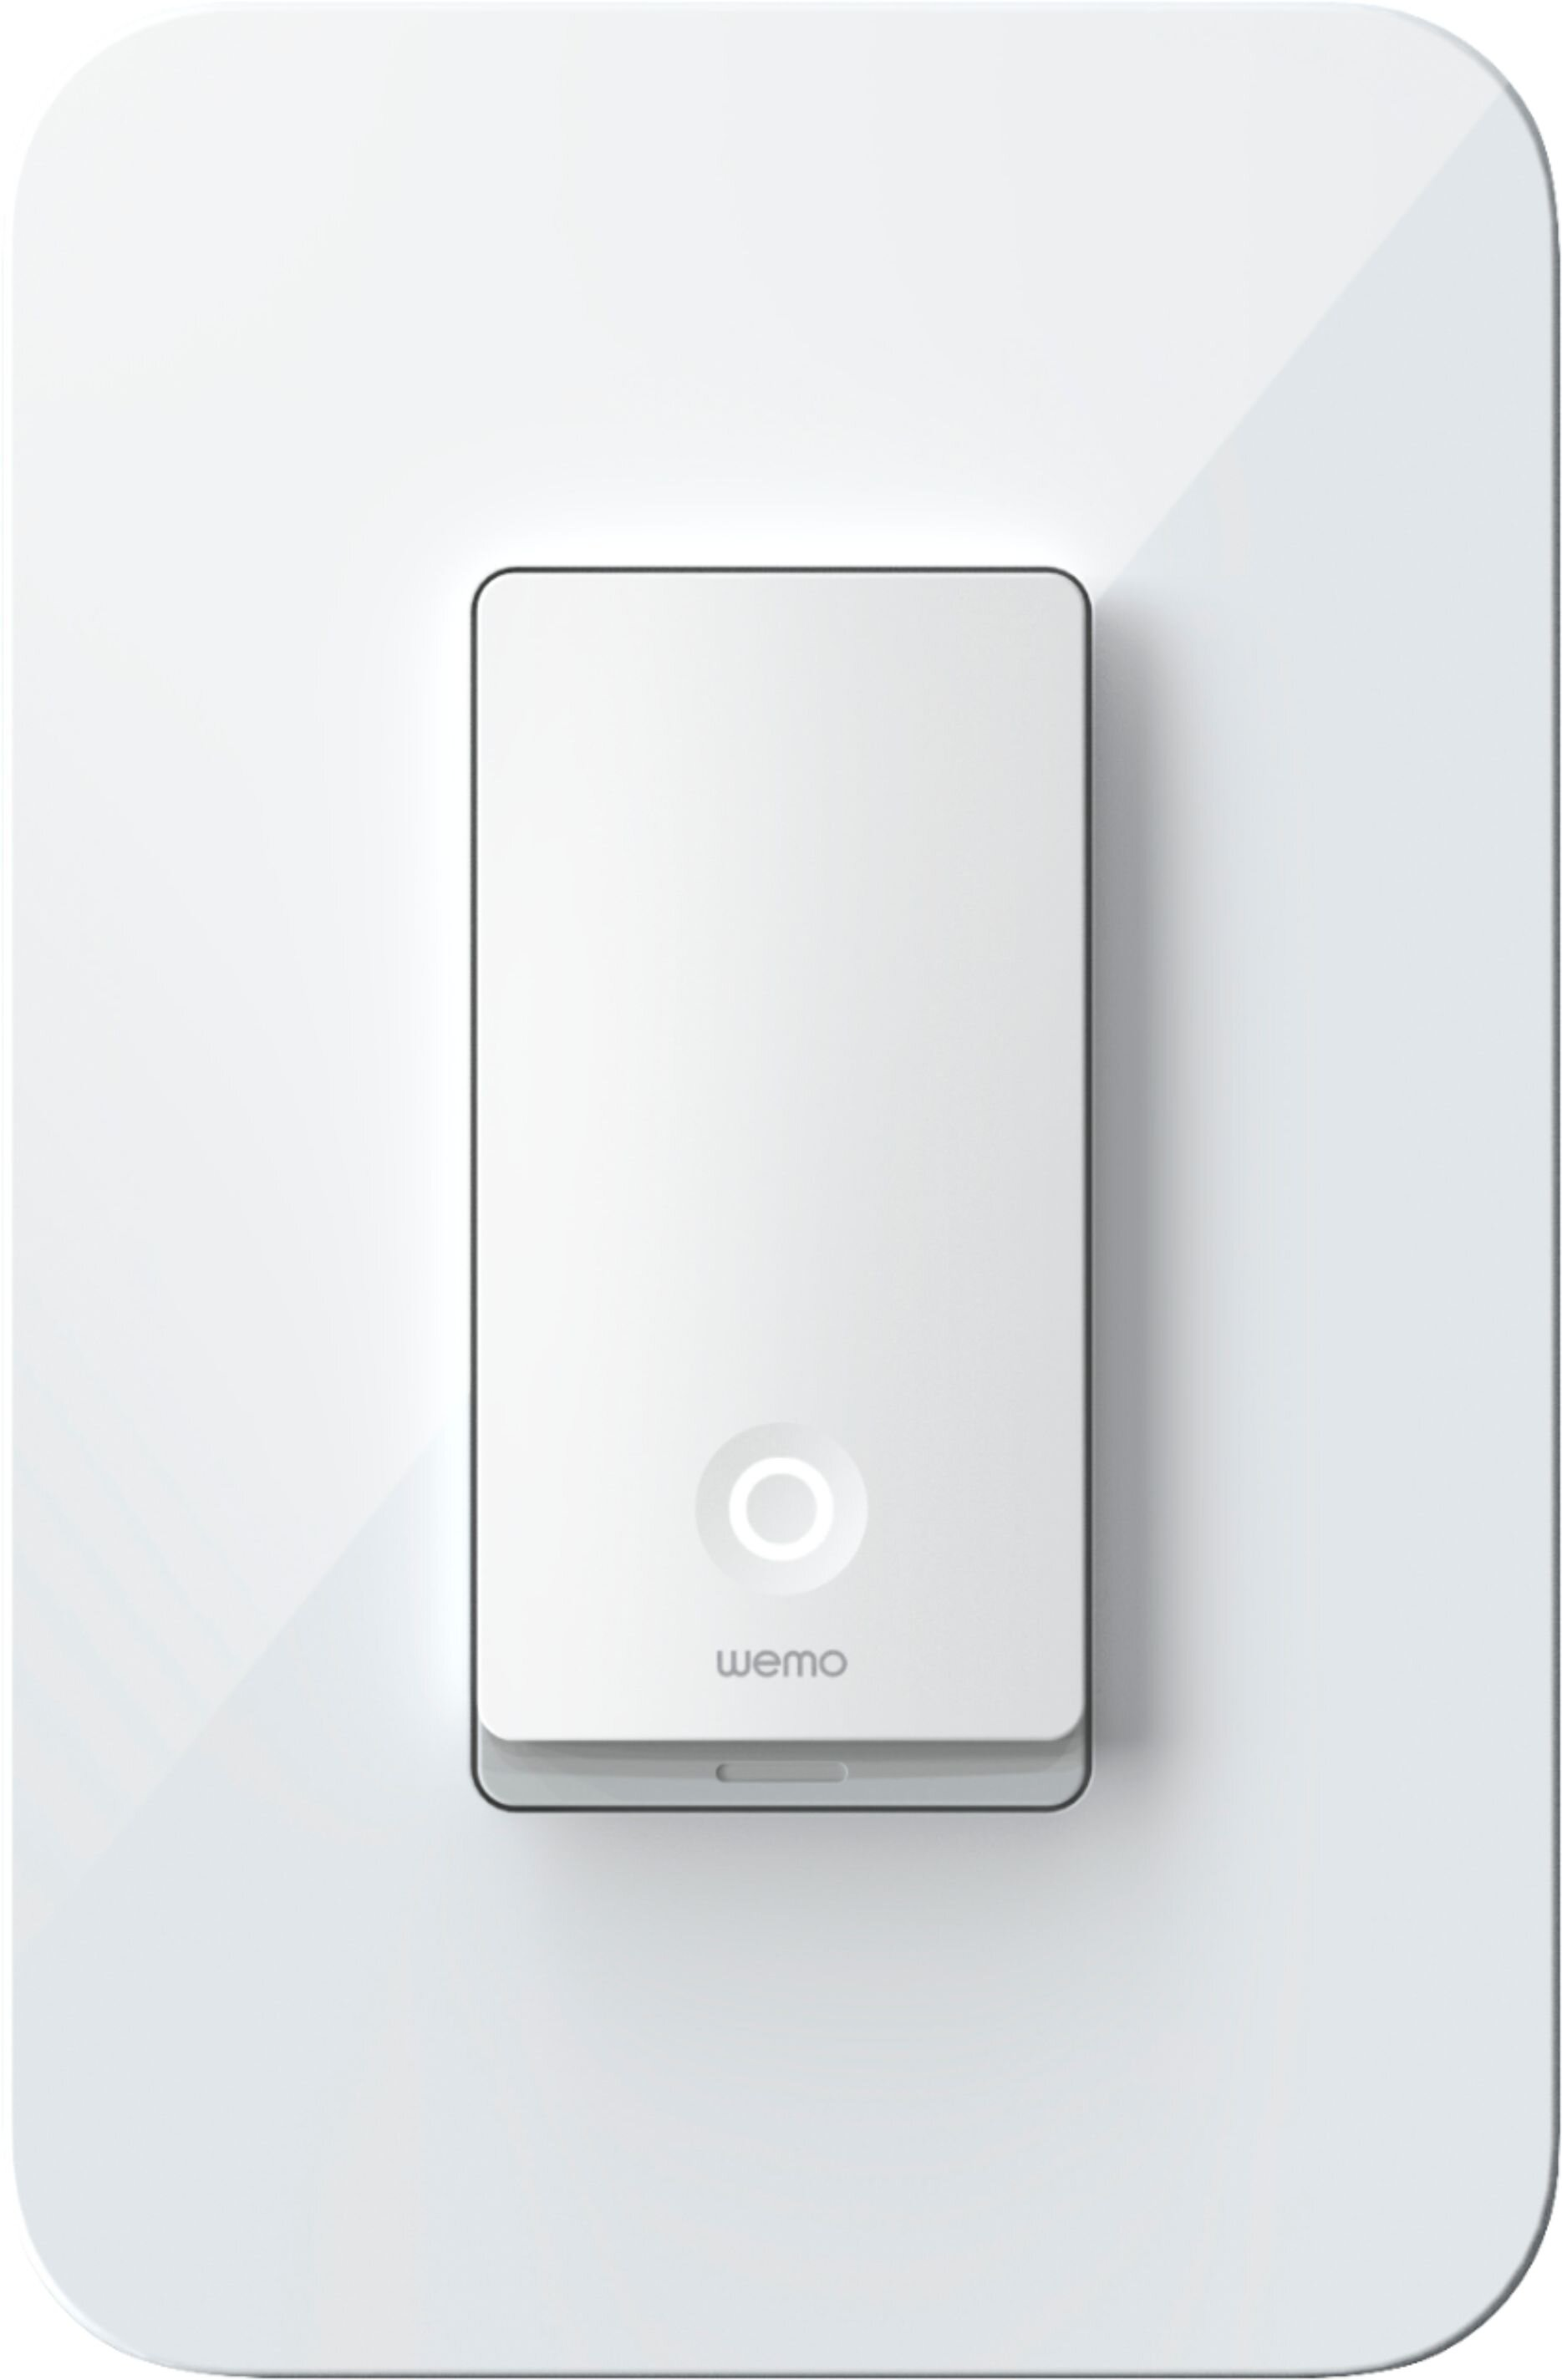 Wemo - Wireless LIGHT Switch - White